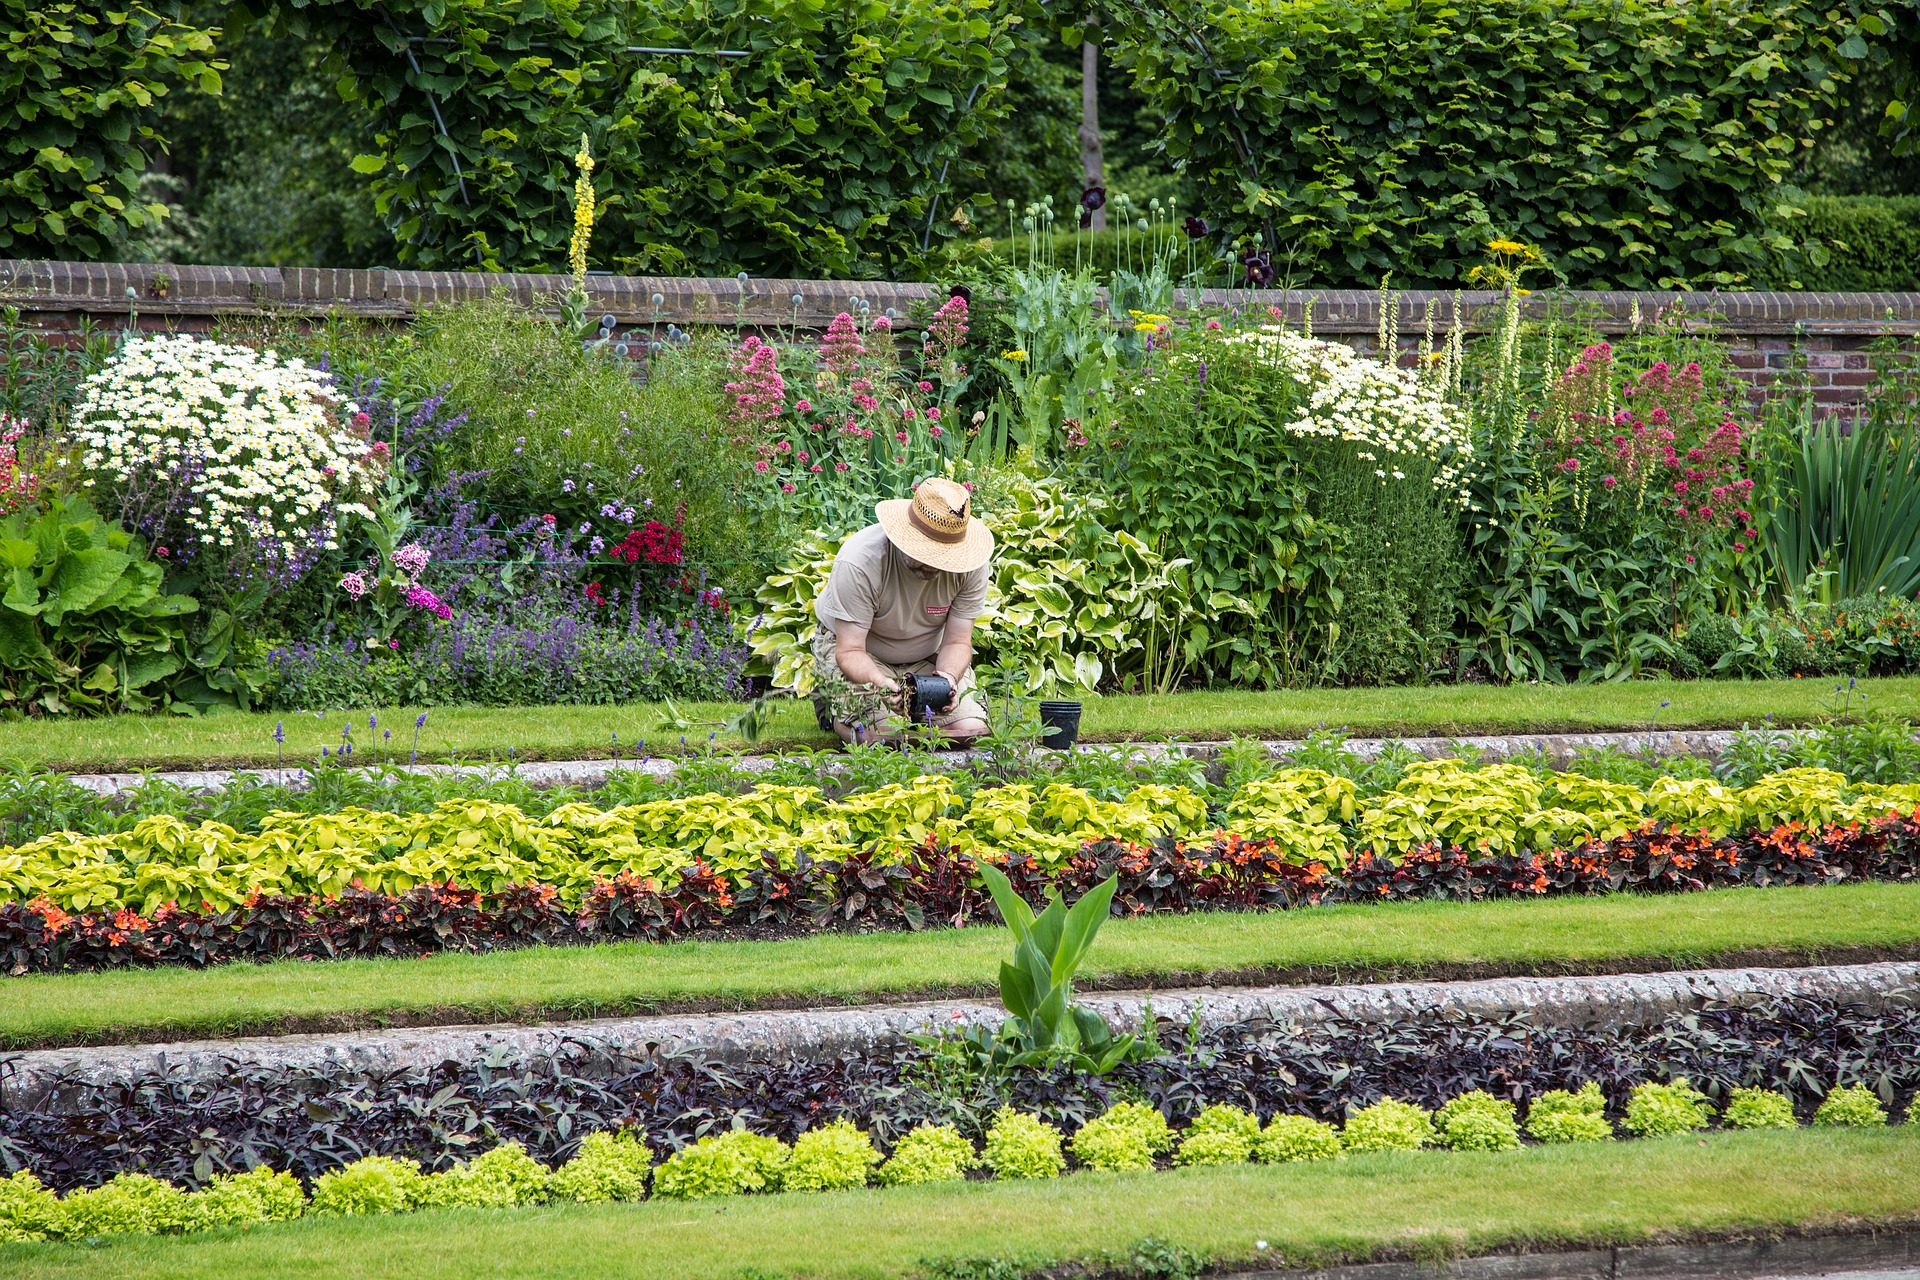 Millions of people love to garden as their pastime. The popular outdoor activity has many associated health benefits, but can also lead to back and joint pain. As you start your gardening this season, try these tips to prevent gardening pain.